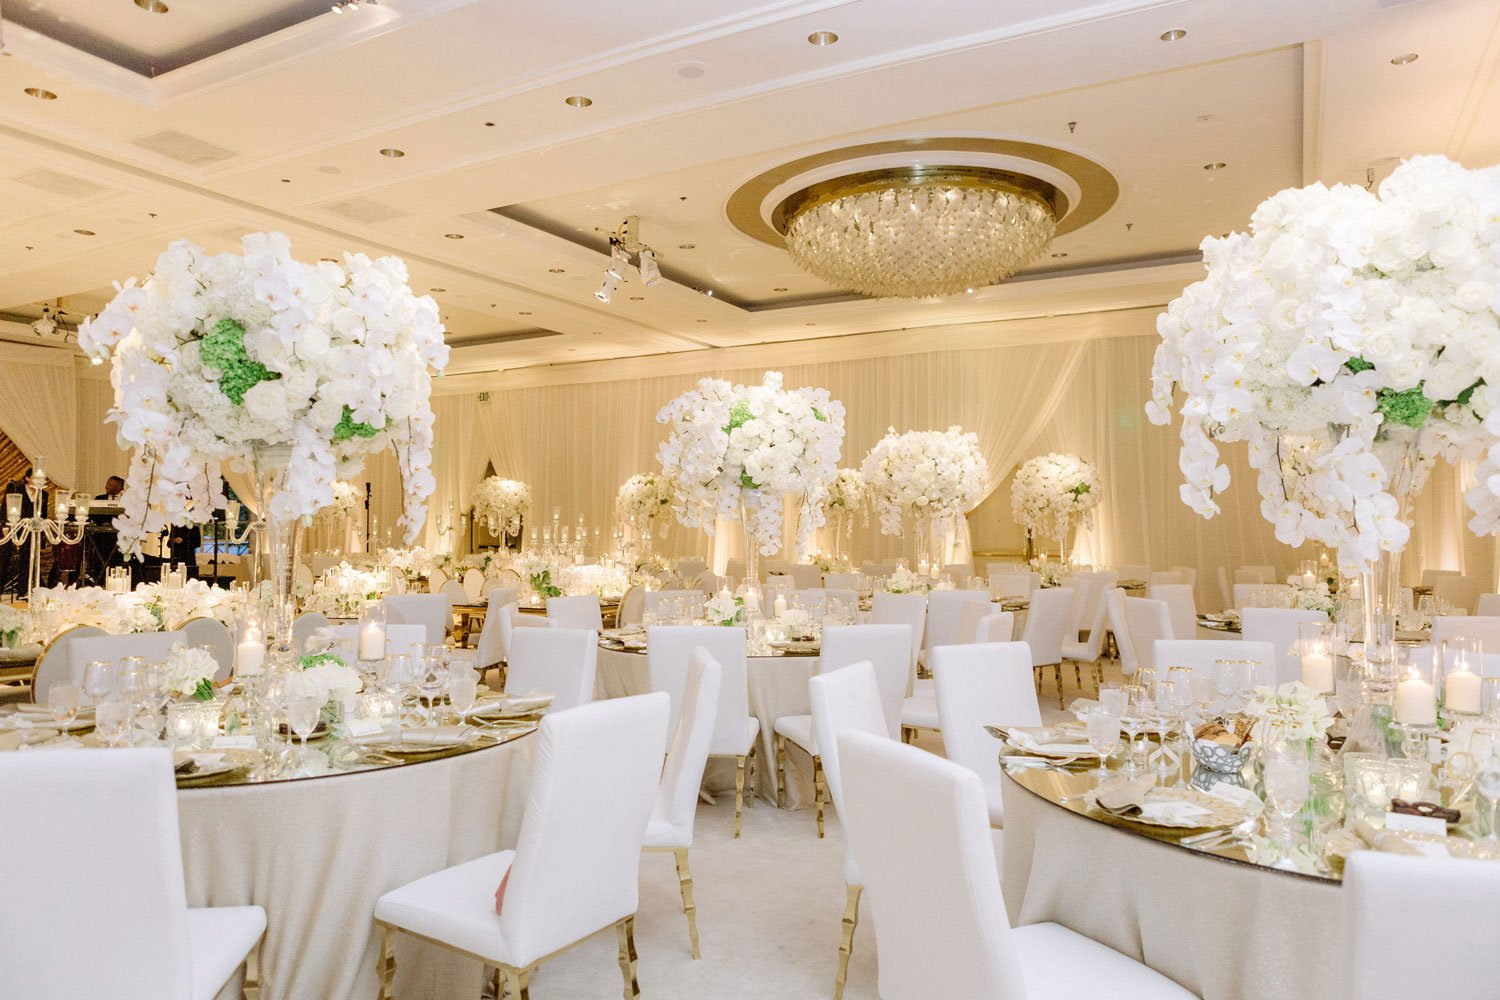 21 White and Gold Wedding Ceremony + Reception Ideas - Inside Weddings